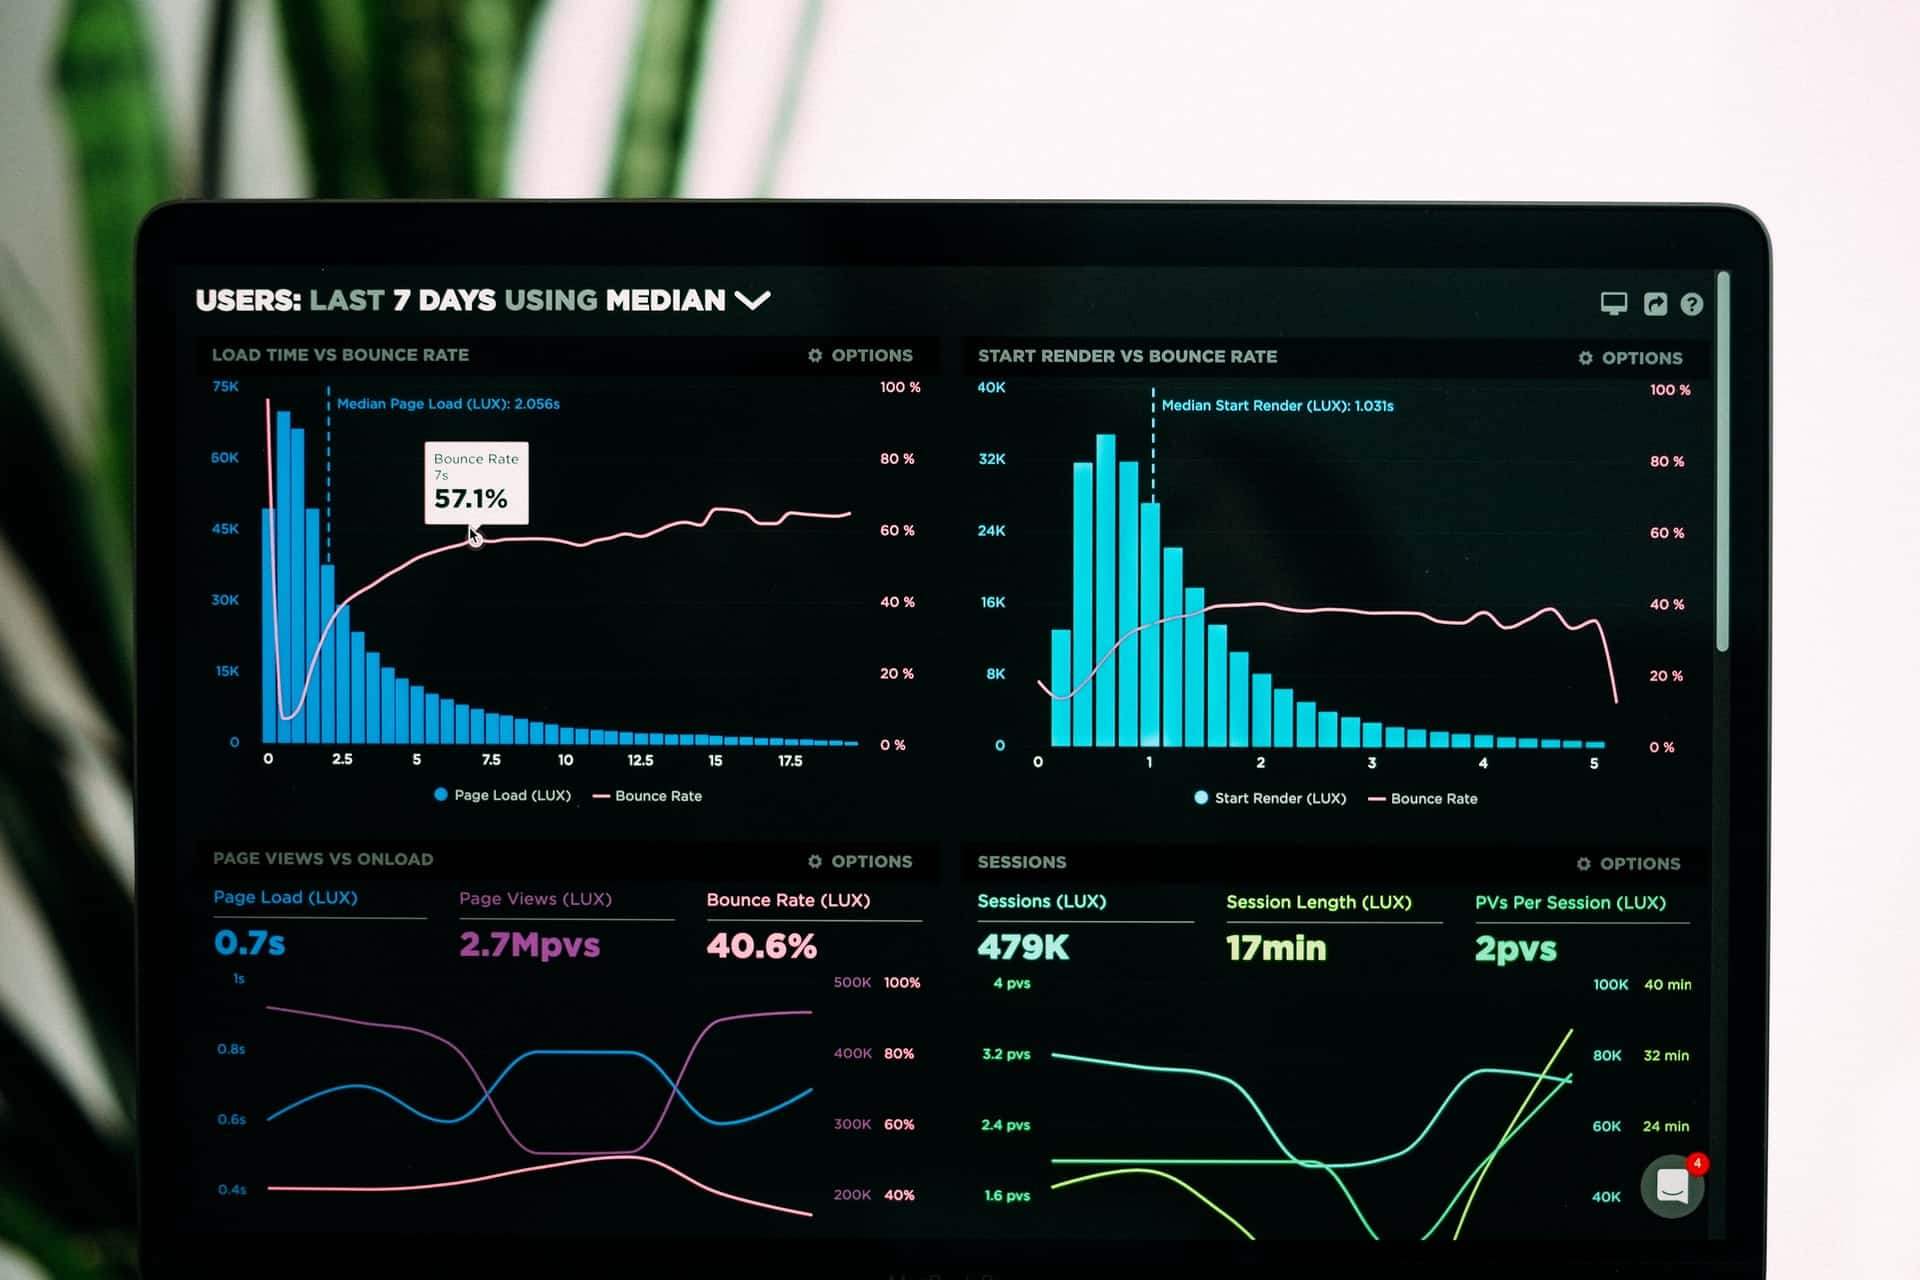 5 Dashboard Design Principles Top Designers Live By from WANDR, award-winning Product Design and UX Design Agency